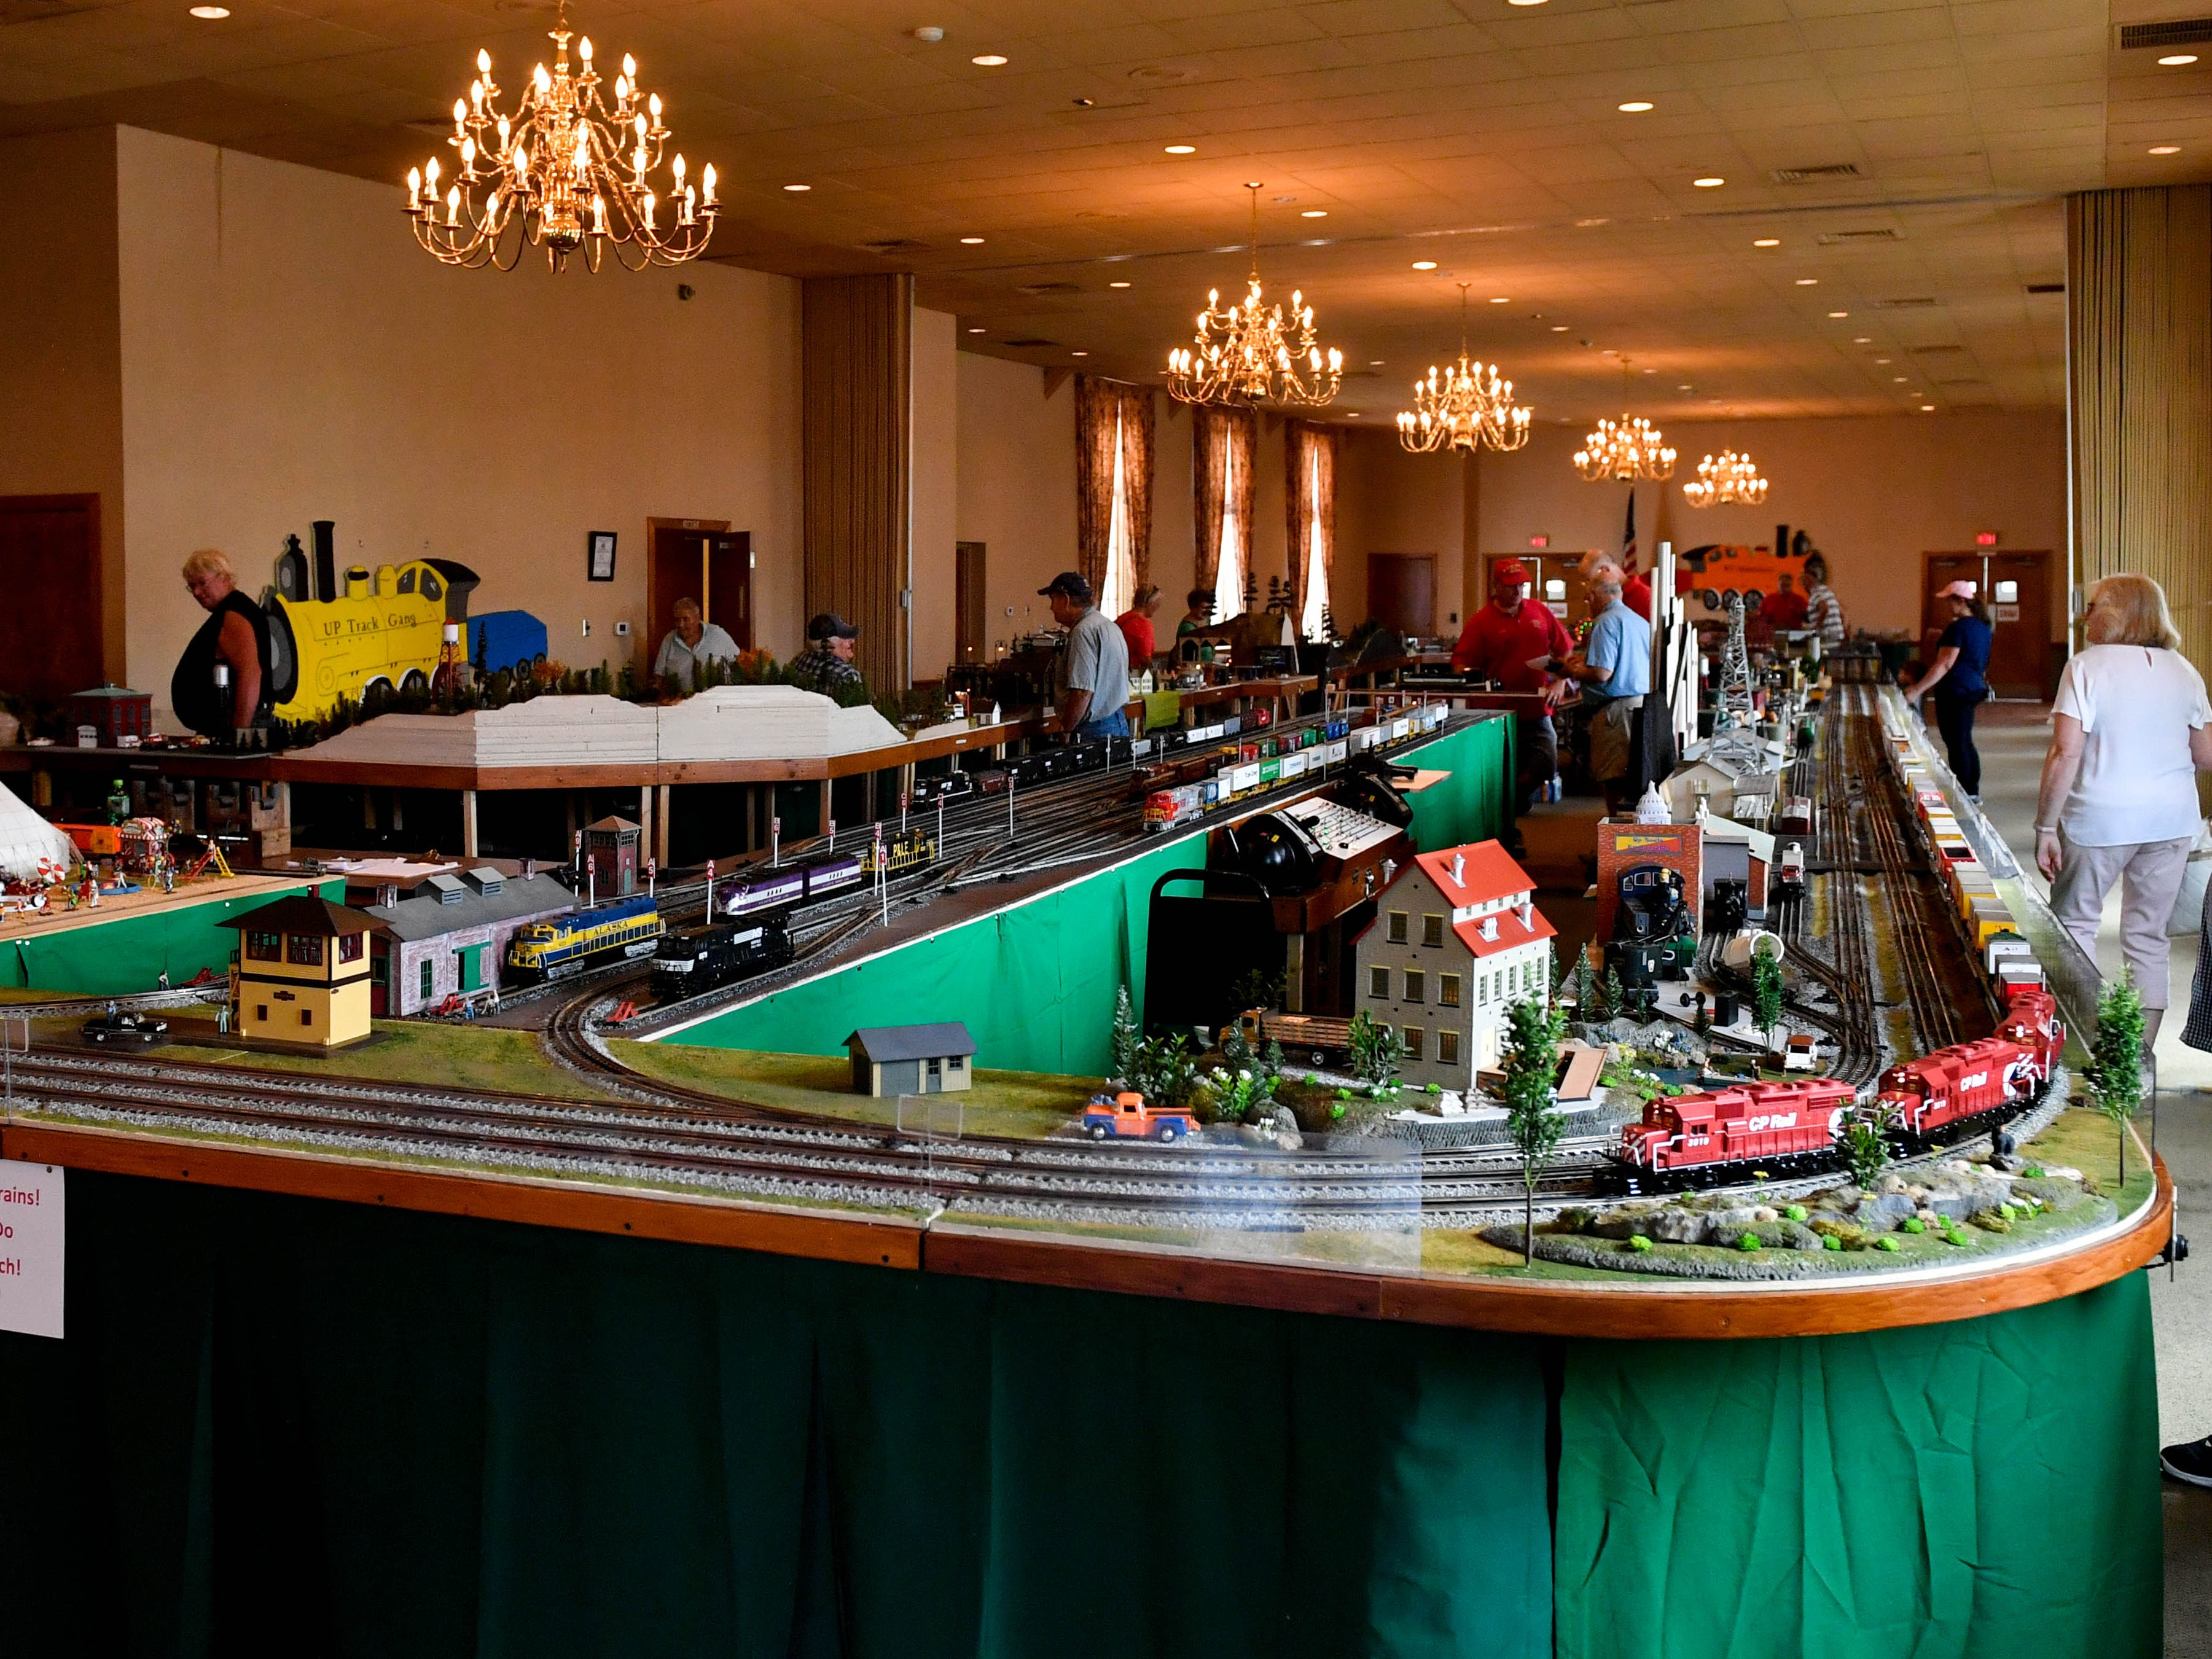 The York Fair features an entire room dedicated to model trains.